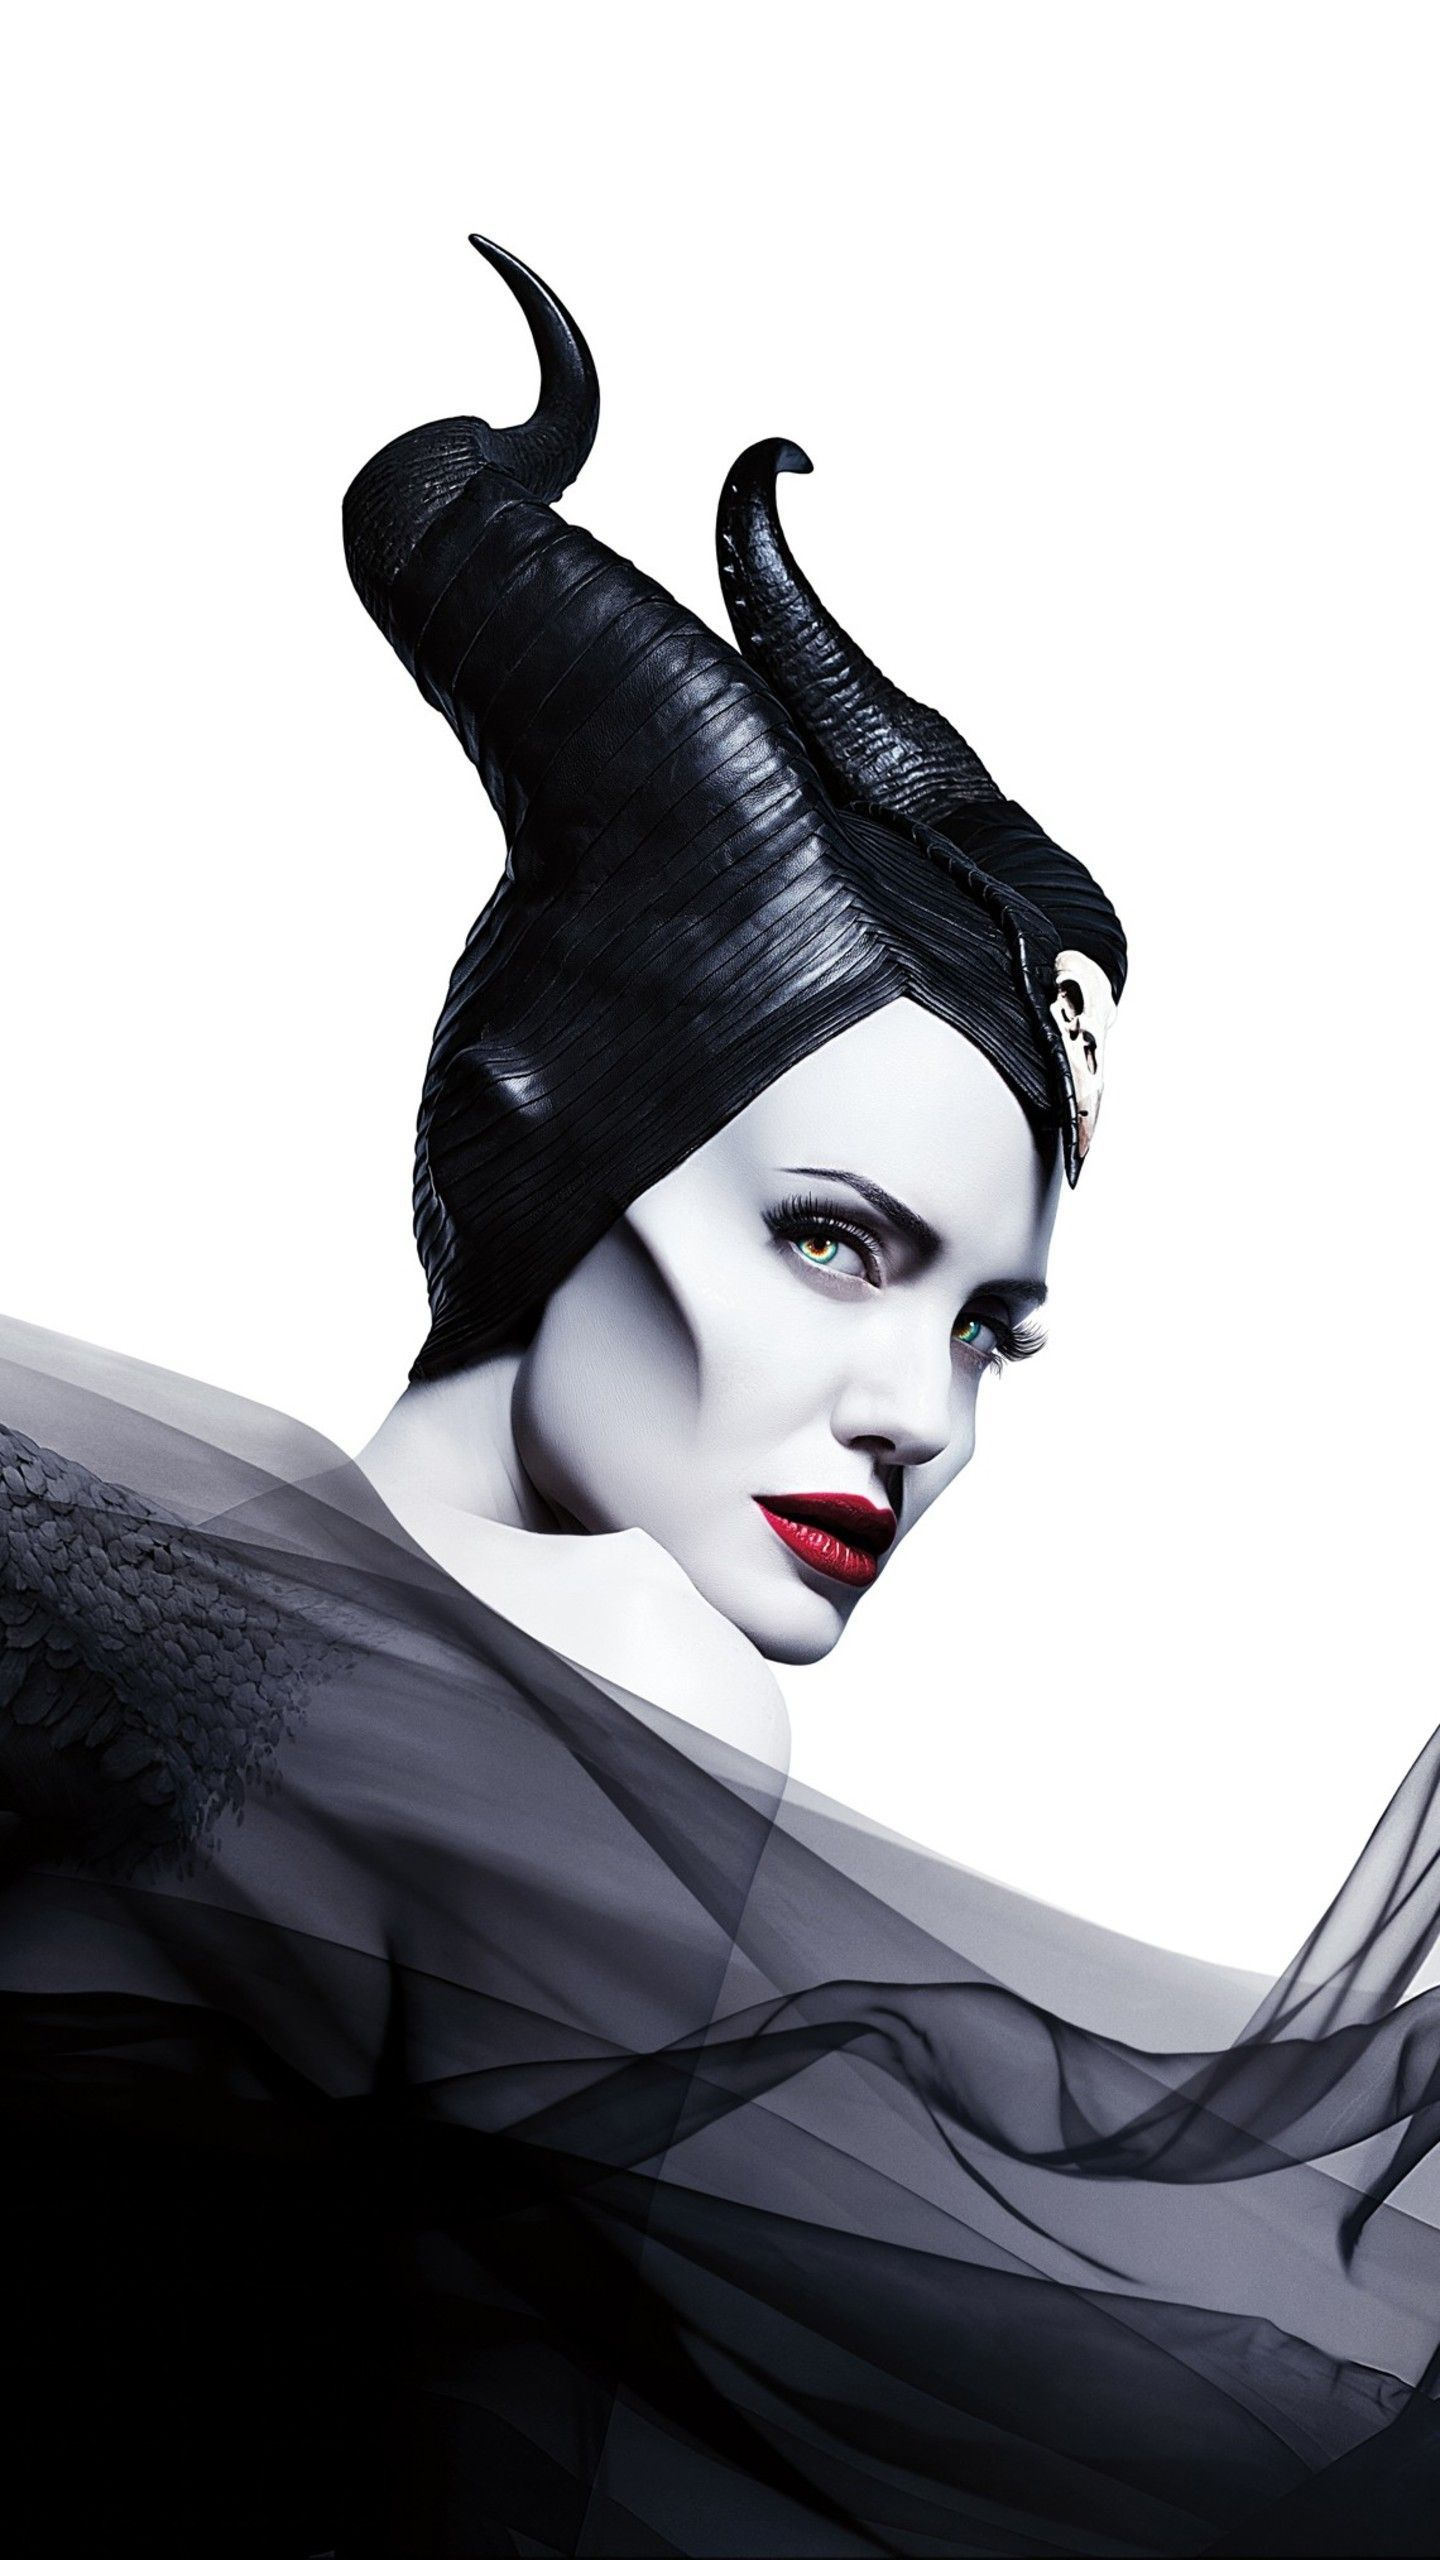 Maleficent Mistress Of Evil Review A Boring Yet Heartwarming Sequel Maleficent Maleficent2 Malefi Maleficent Disney Maleficent Angelina Jolie Maleficent